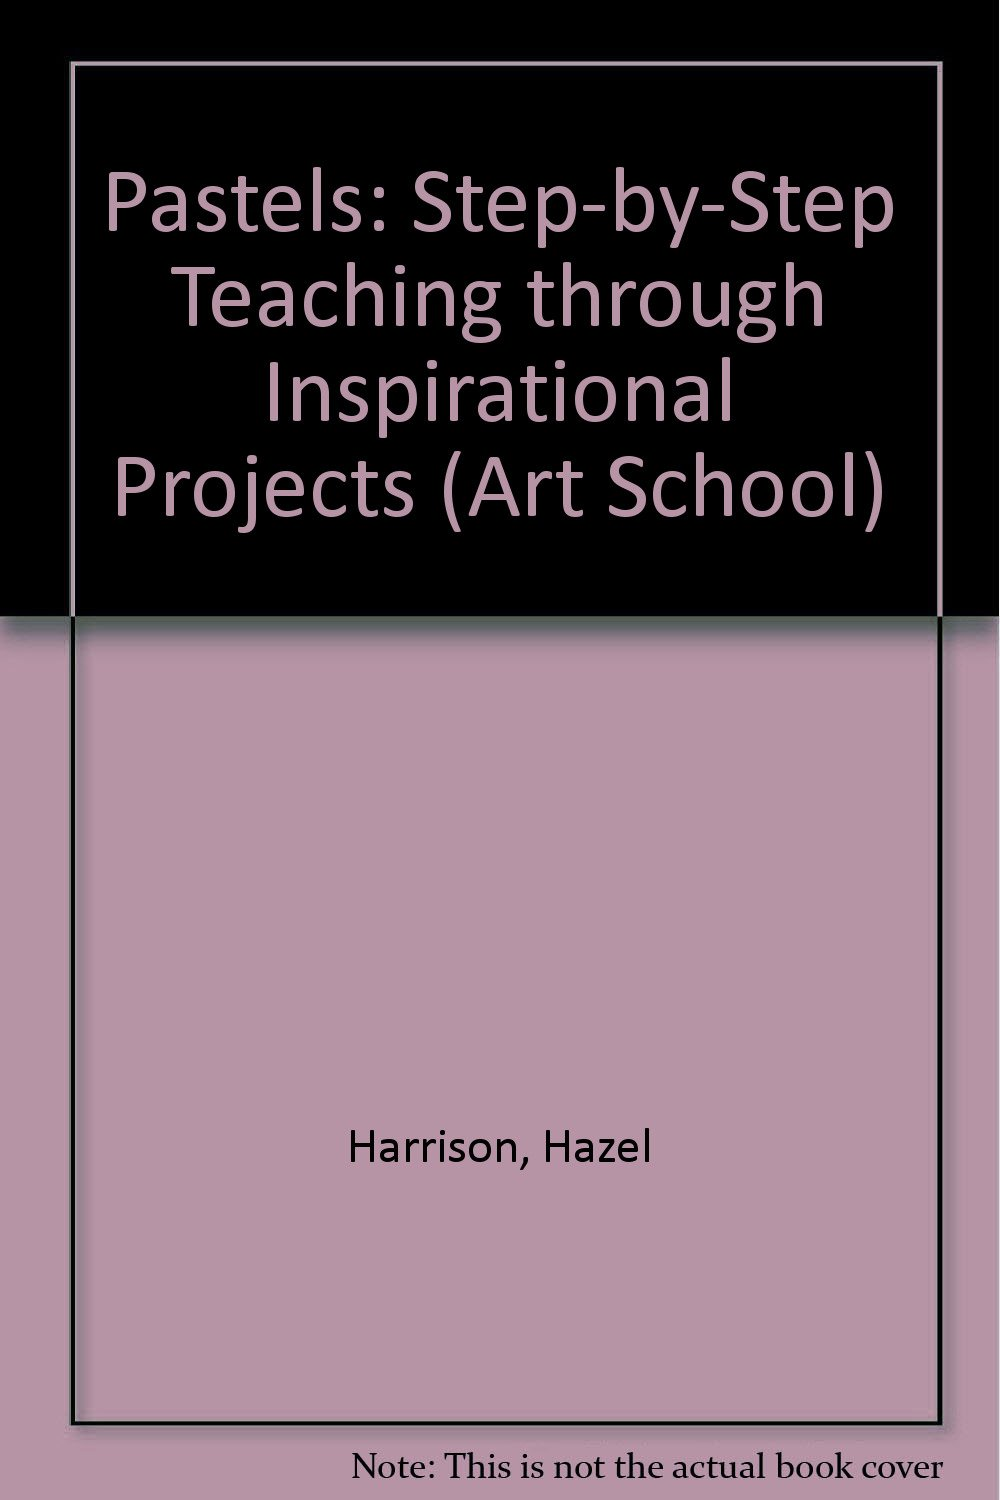 PASTELS: STEP-BY-STEP TEACHING THROUGH INSPIRATIONAL PROJECTS (ART SCHOOL)